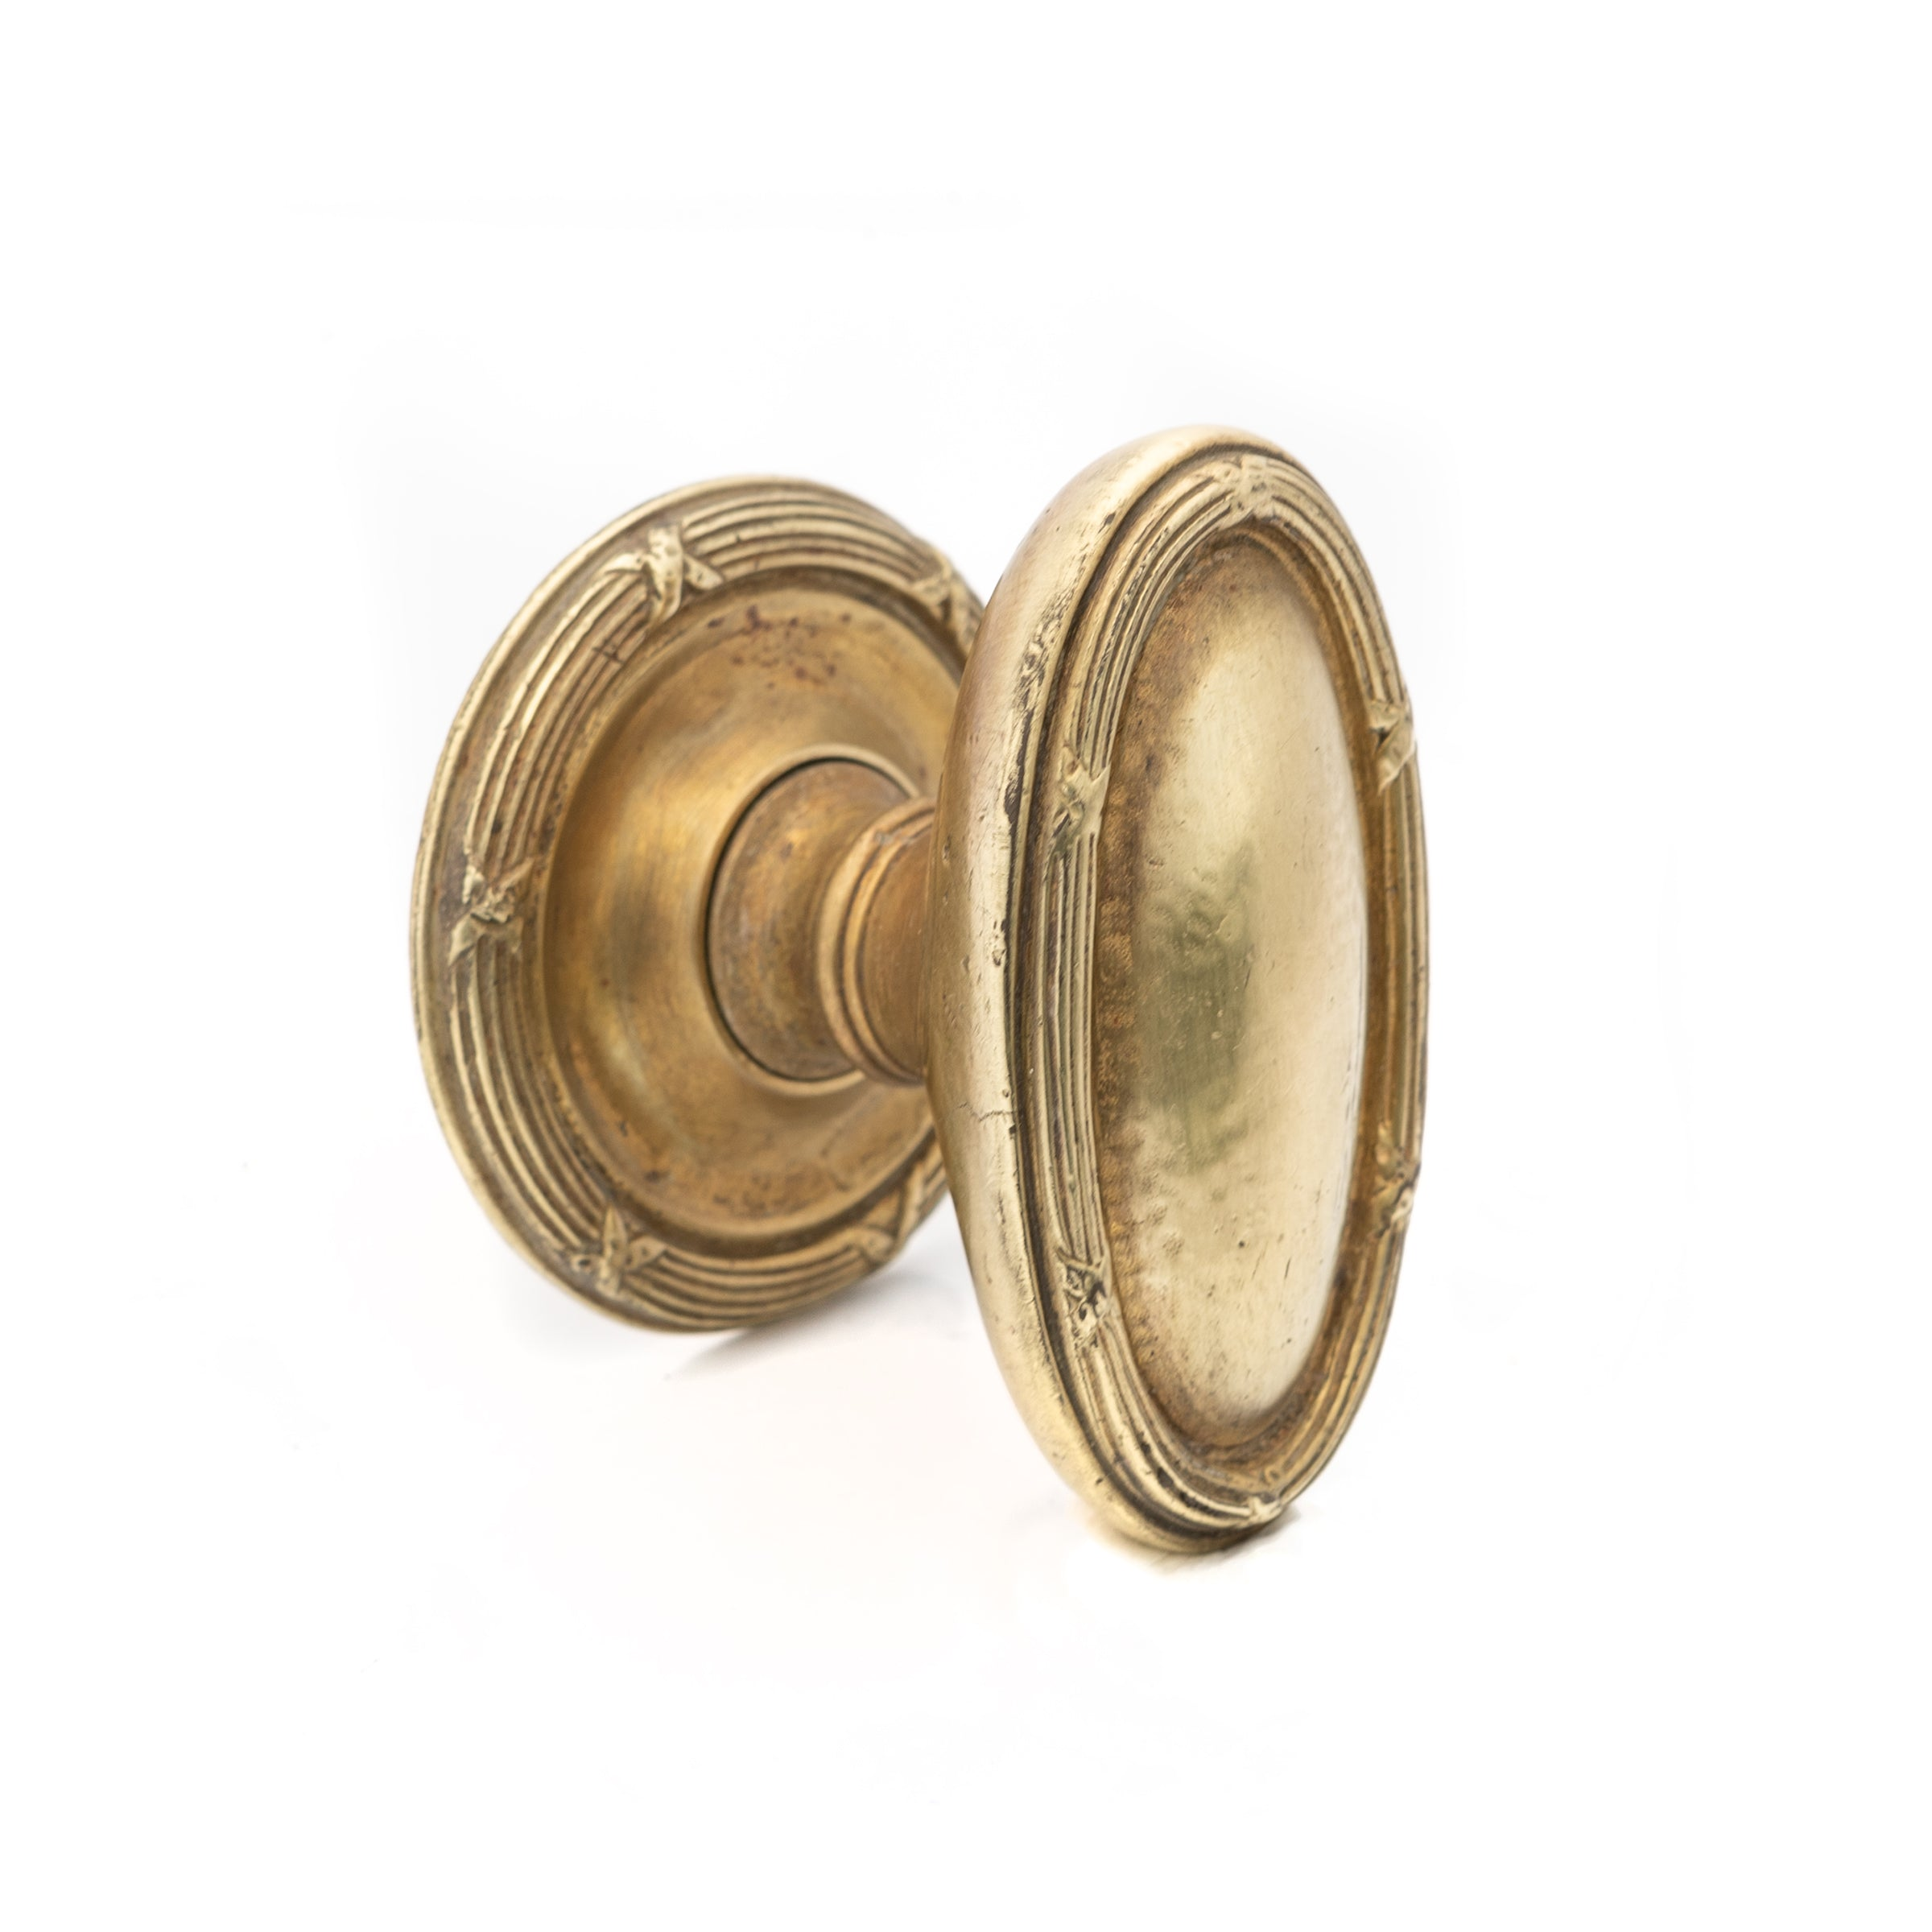 Antique Edwardian Oval Brass Door Knob